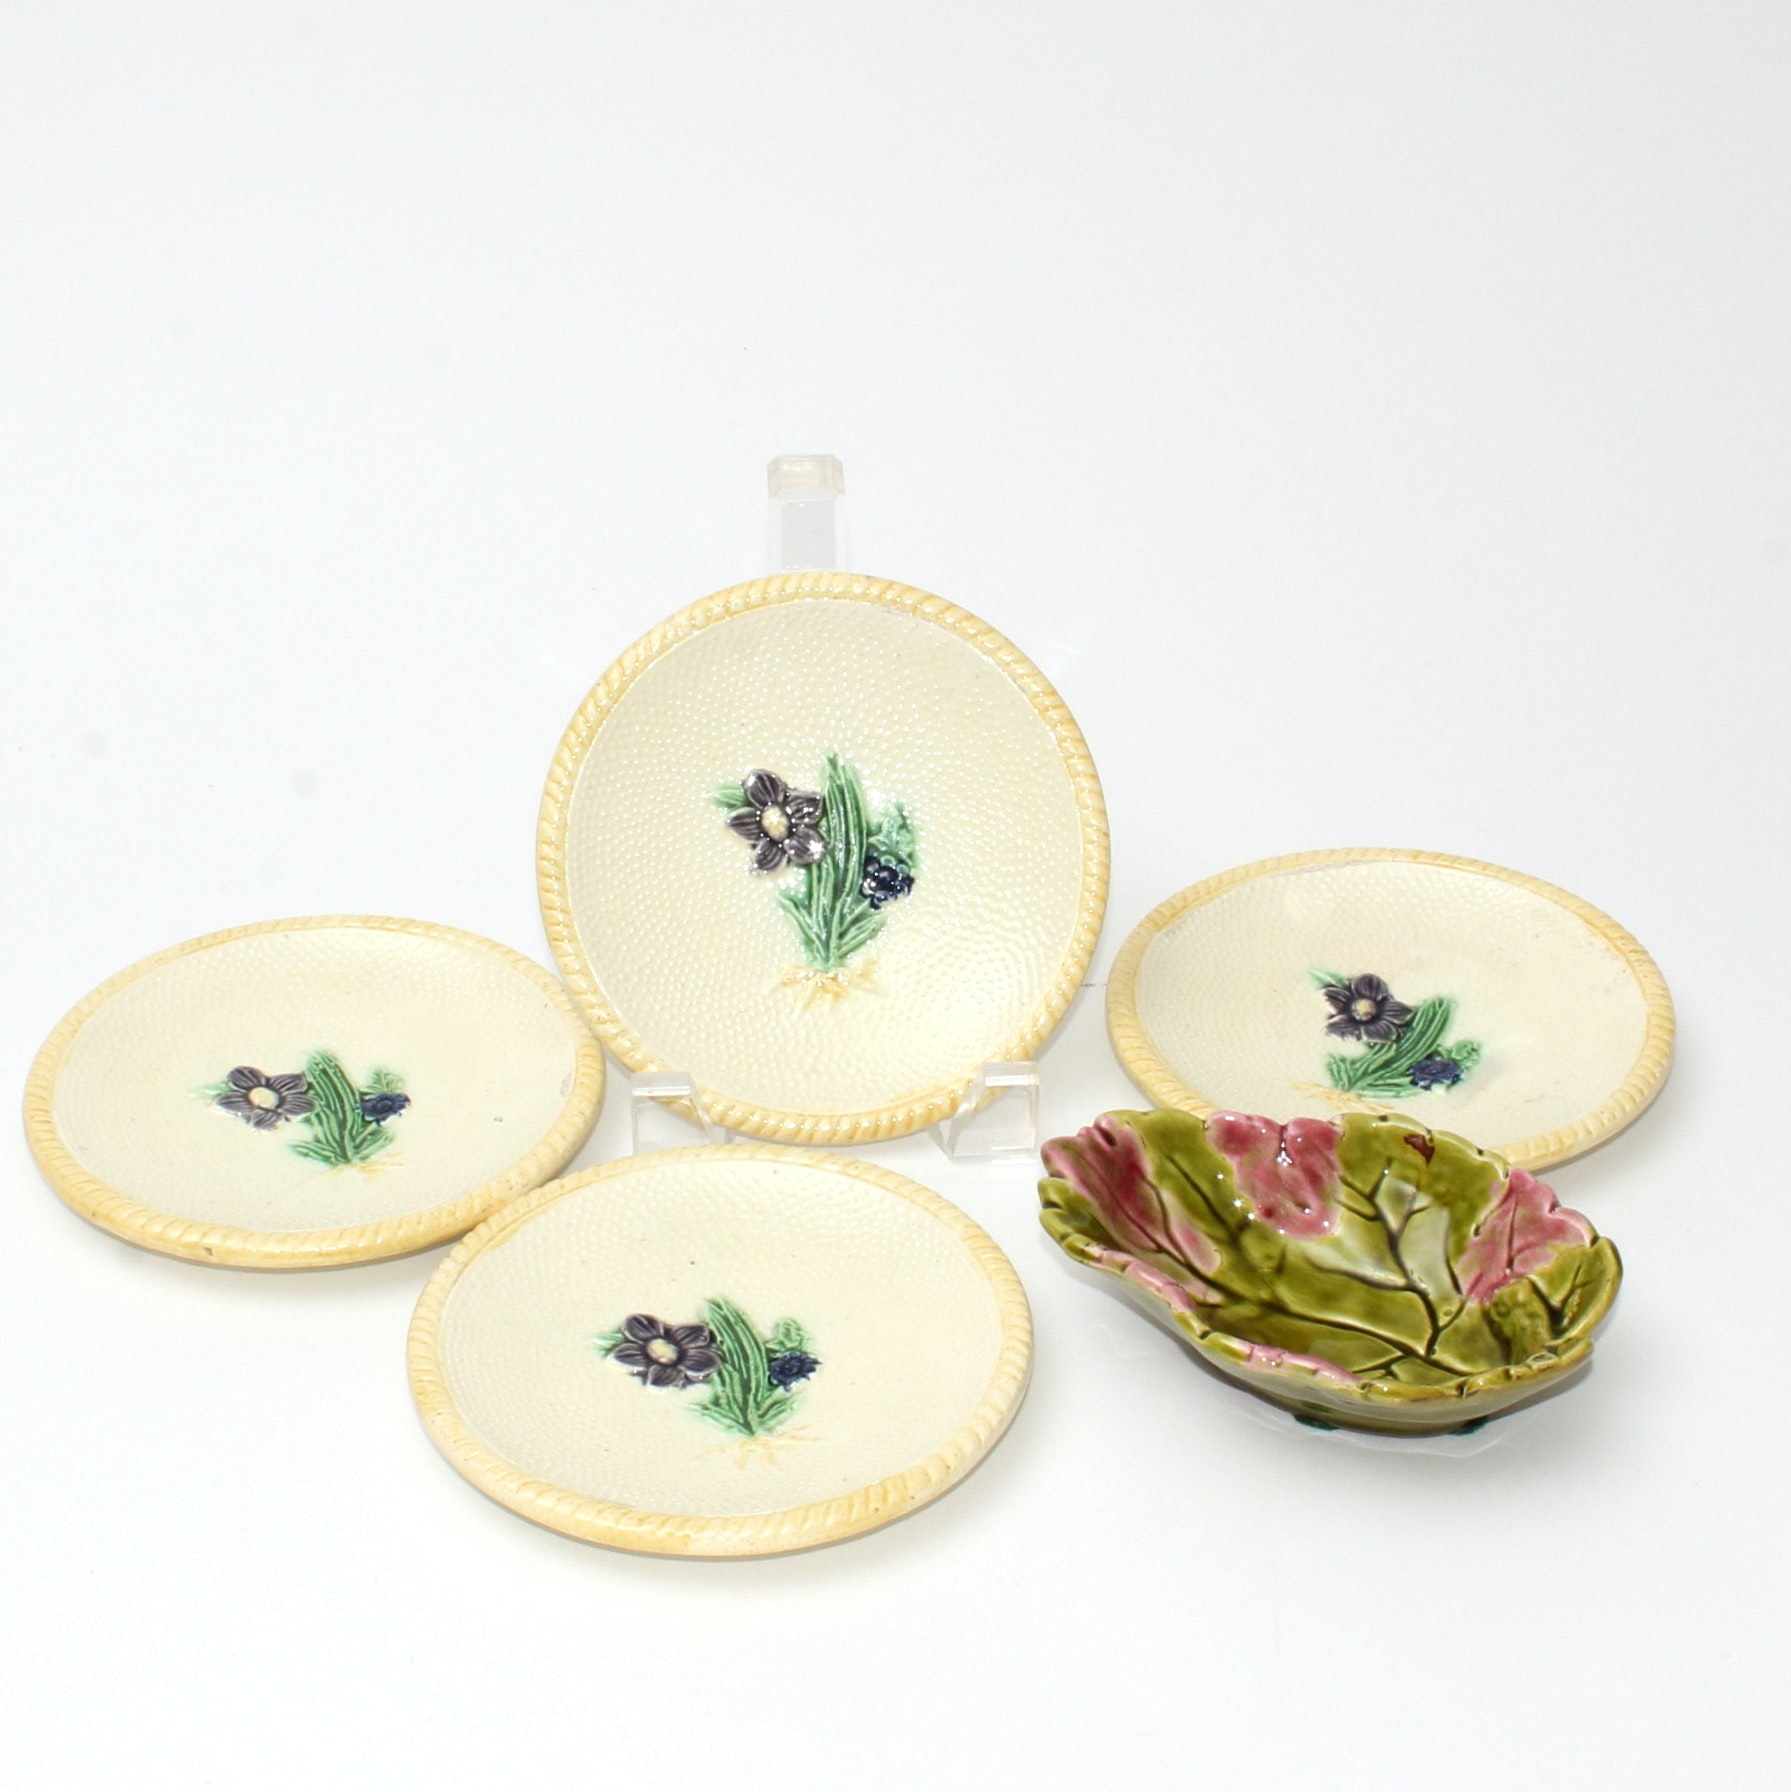 Vintage Majolica Cabbage Bowl and Four Plates